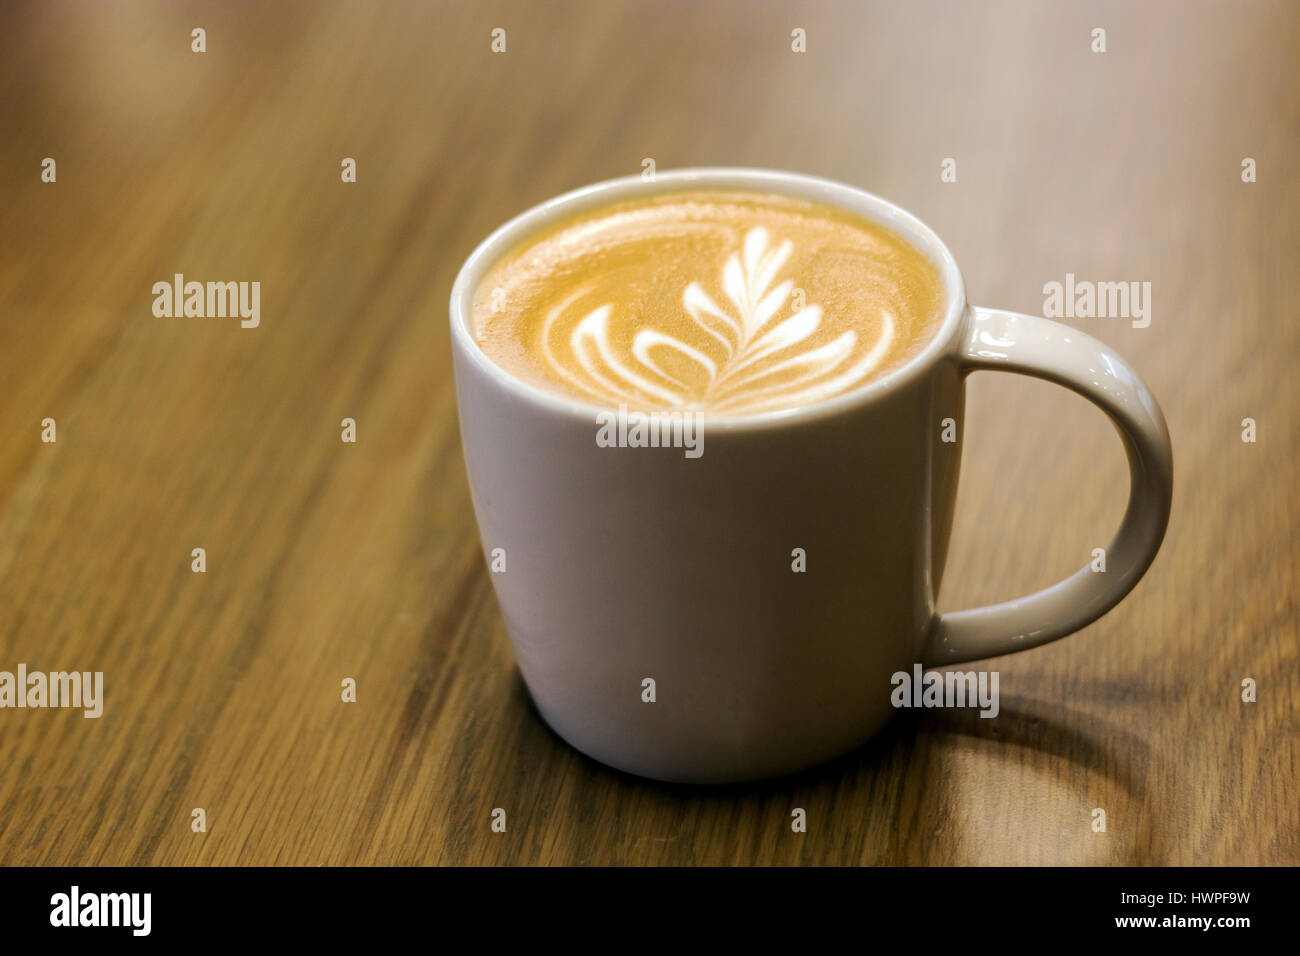 close up late art like fern on top of capucinno coffee on wood background in dark concept - Stock Image